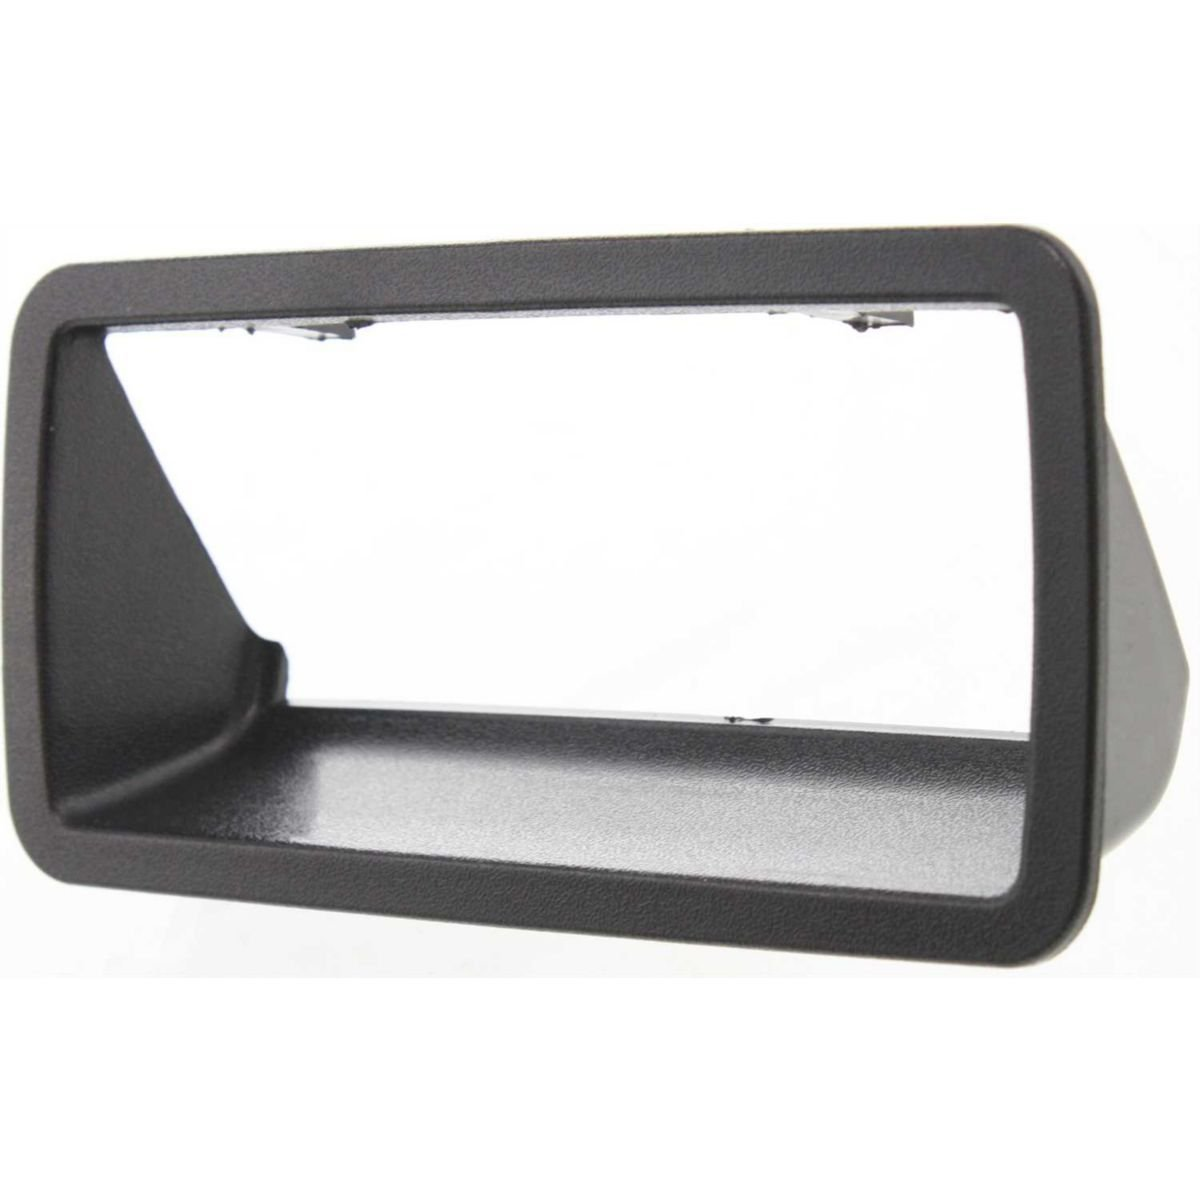 Diften 102-A3912-X01 - New Tailgate Handle Bezel Outer Black S10 Pickup Chevy GM1916103 15007219